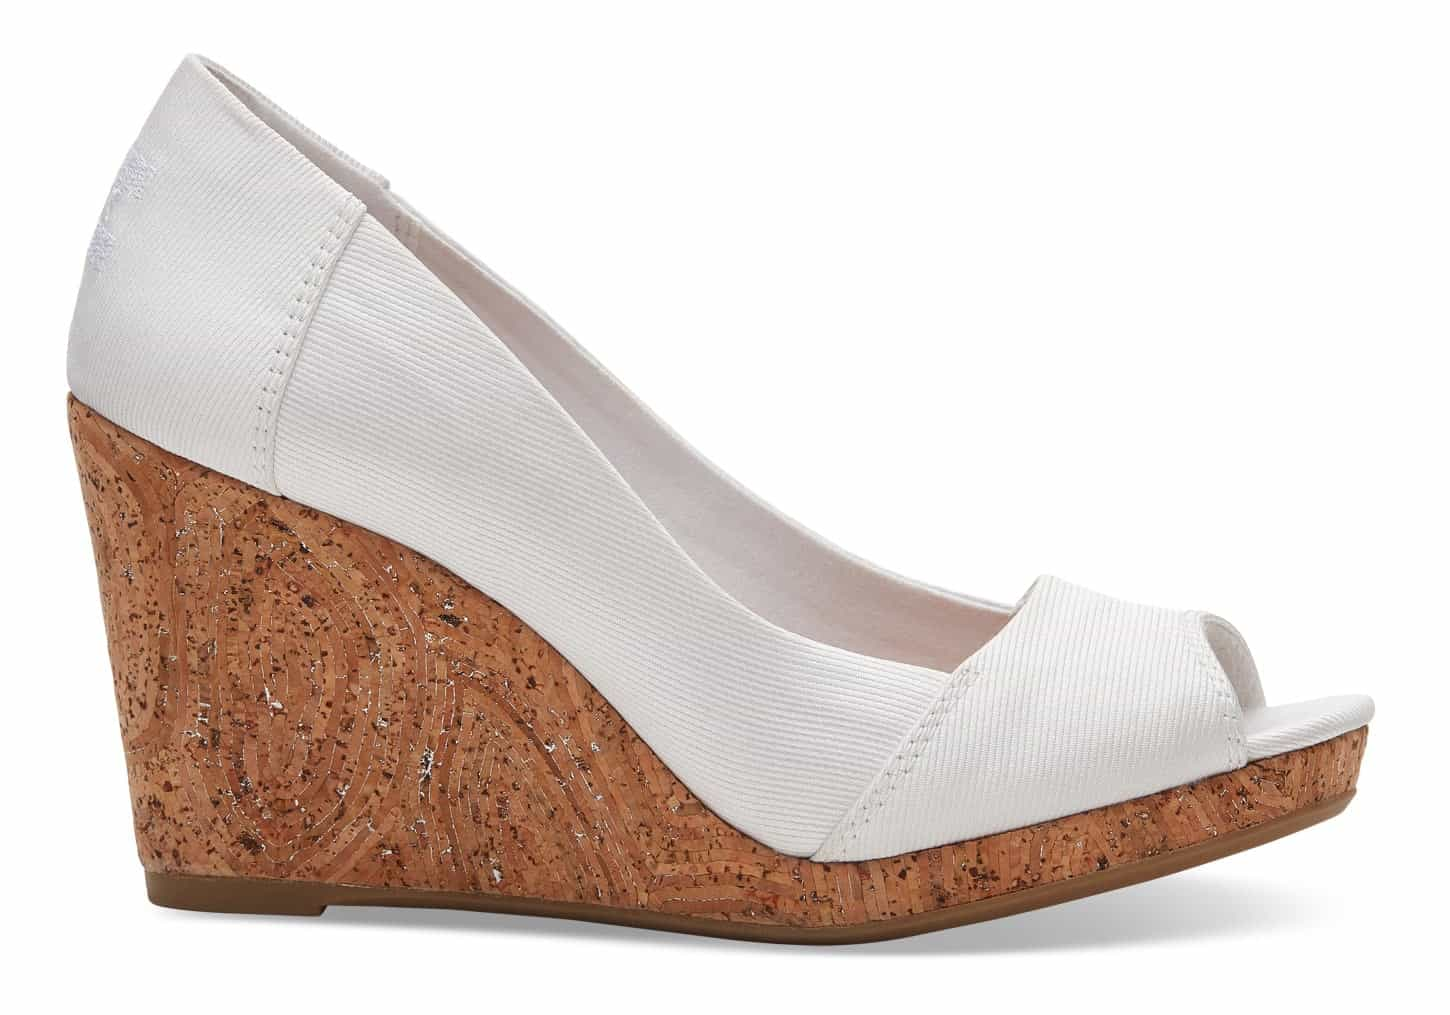 Toms Wedding Shoes – The Comfortable Flat for Every Bride